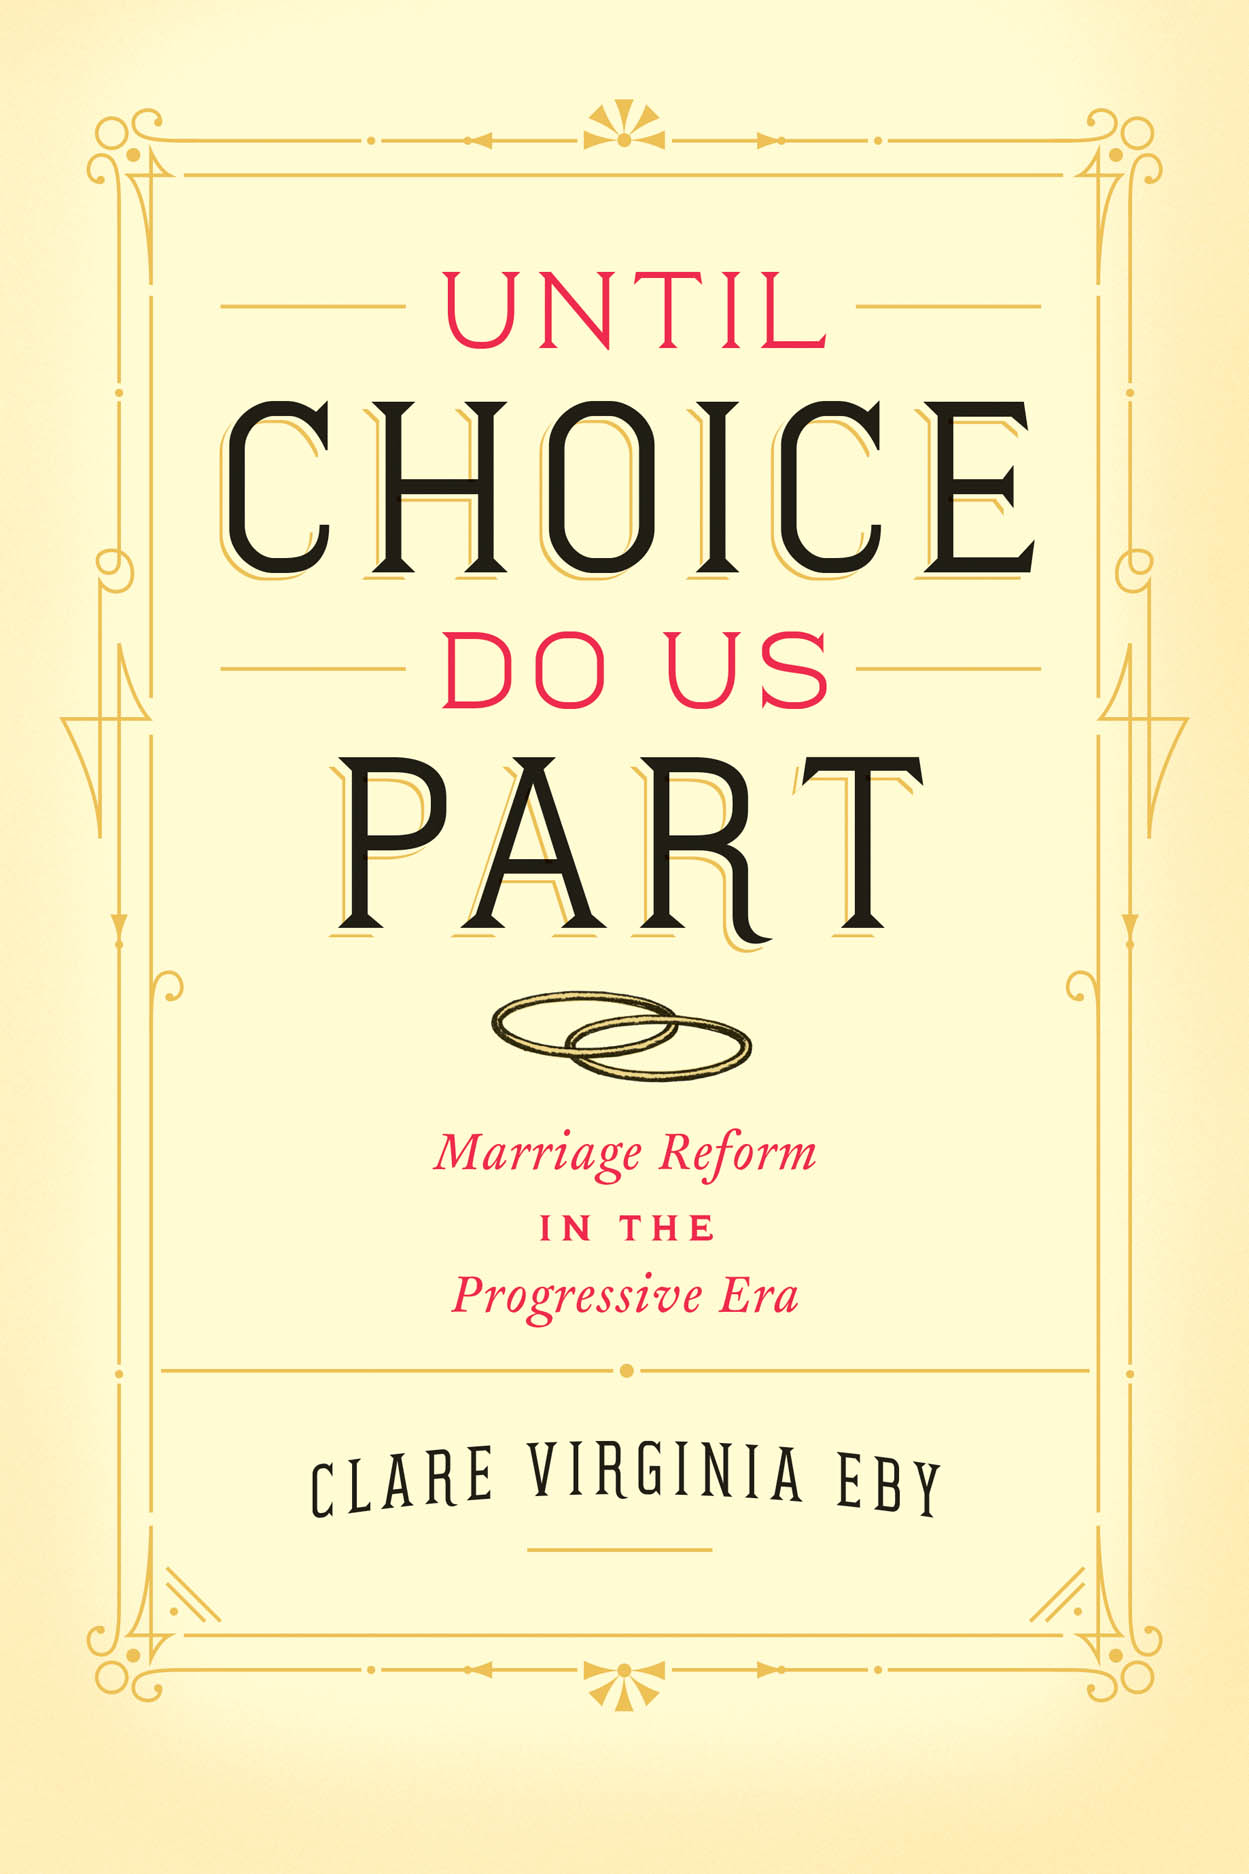 Until Choice Do Us Part: Marriage Reform in the Progressive Era